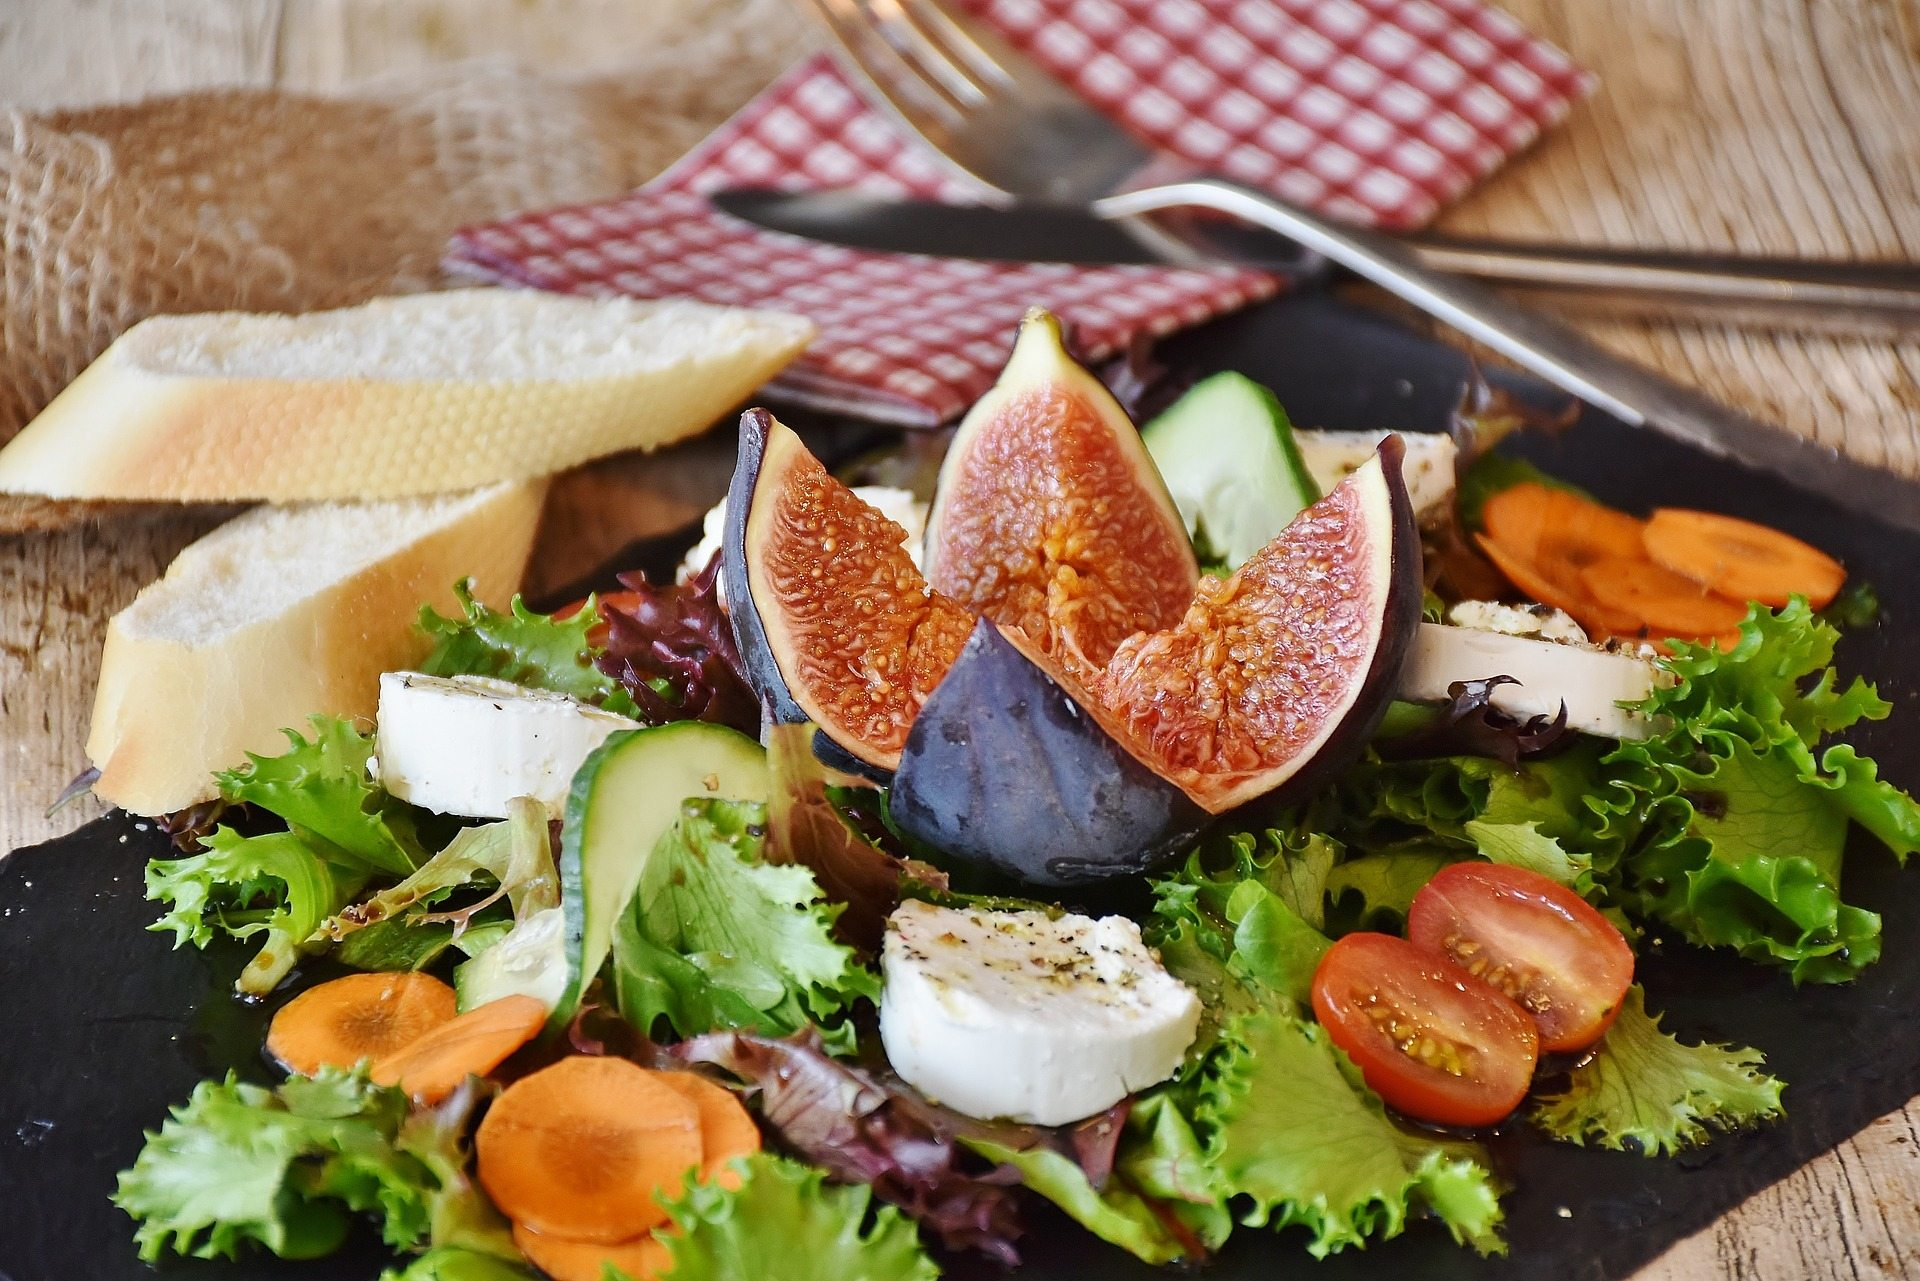 salad 1672505 1920 - 4 Simple Tips For A Happier Healthier Workday